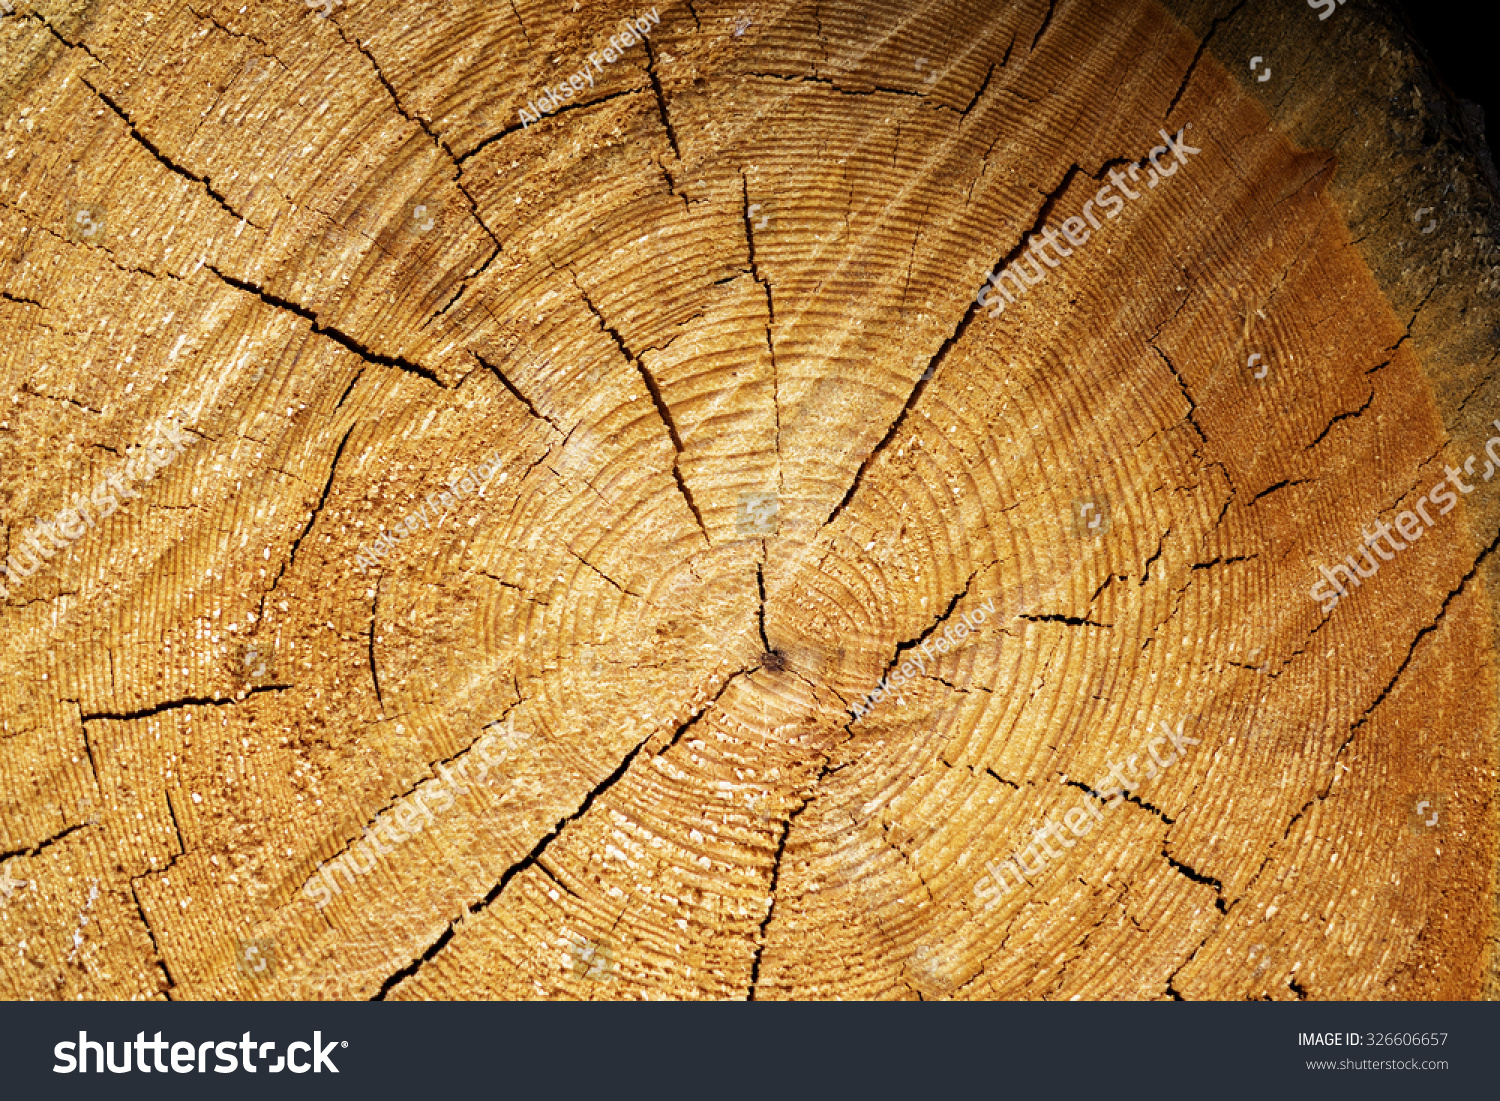 Sawing Logs Elm Tree Background For Websites And Printing Ez Canvas